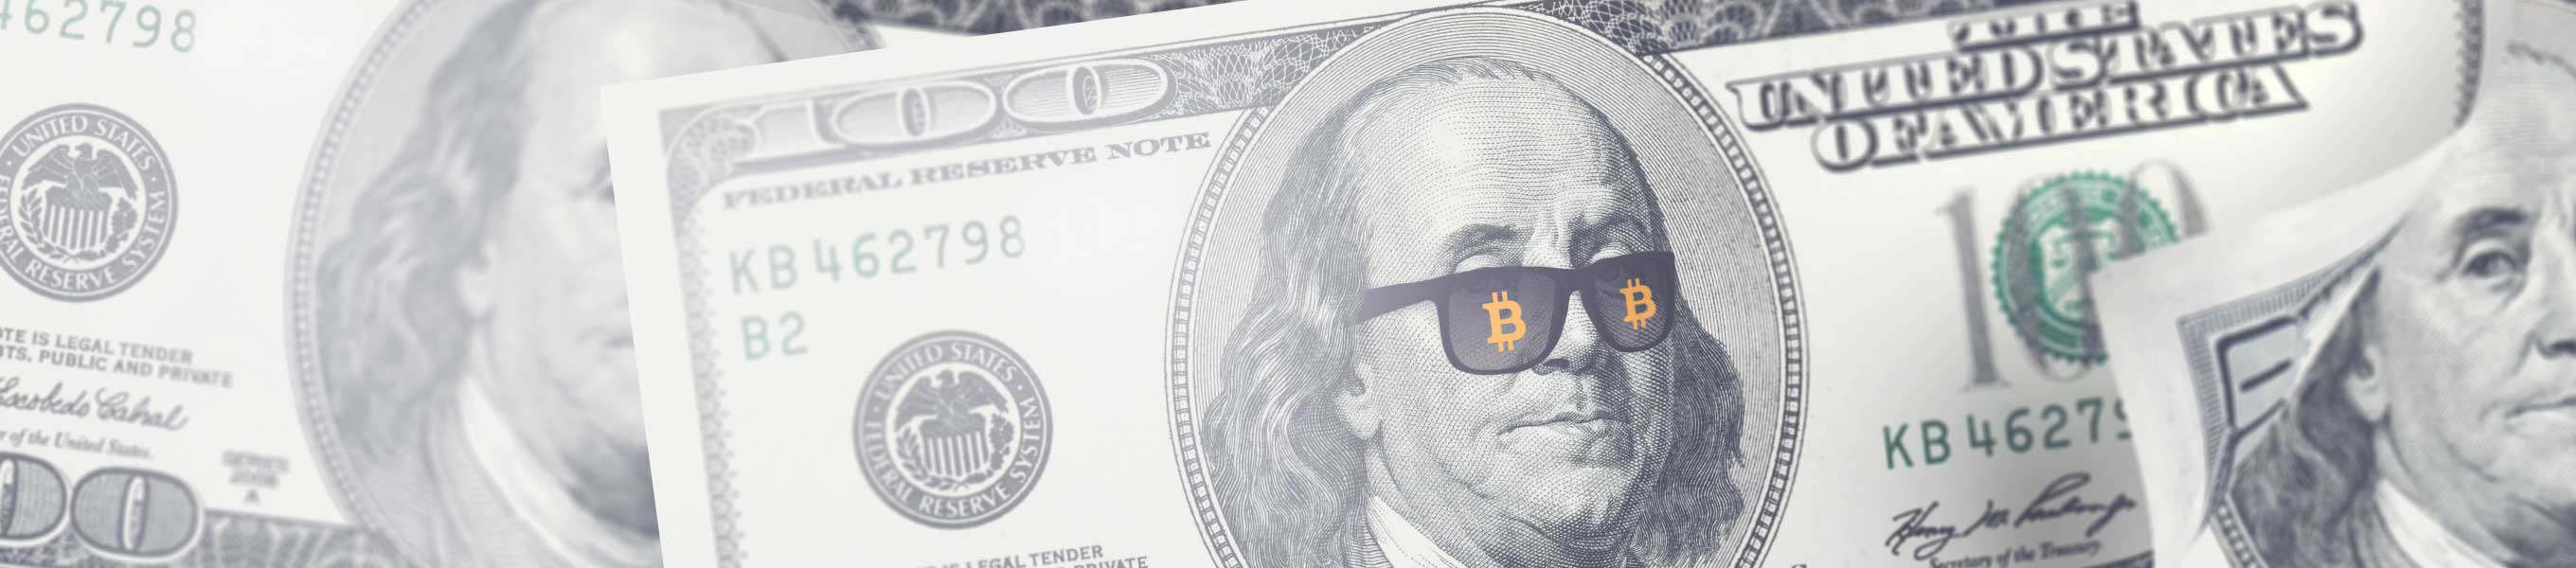 Get up to $4500 in bitcoin bonus when you join Bovada